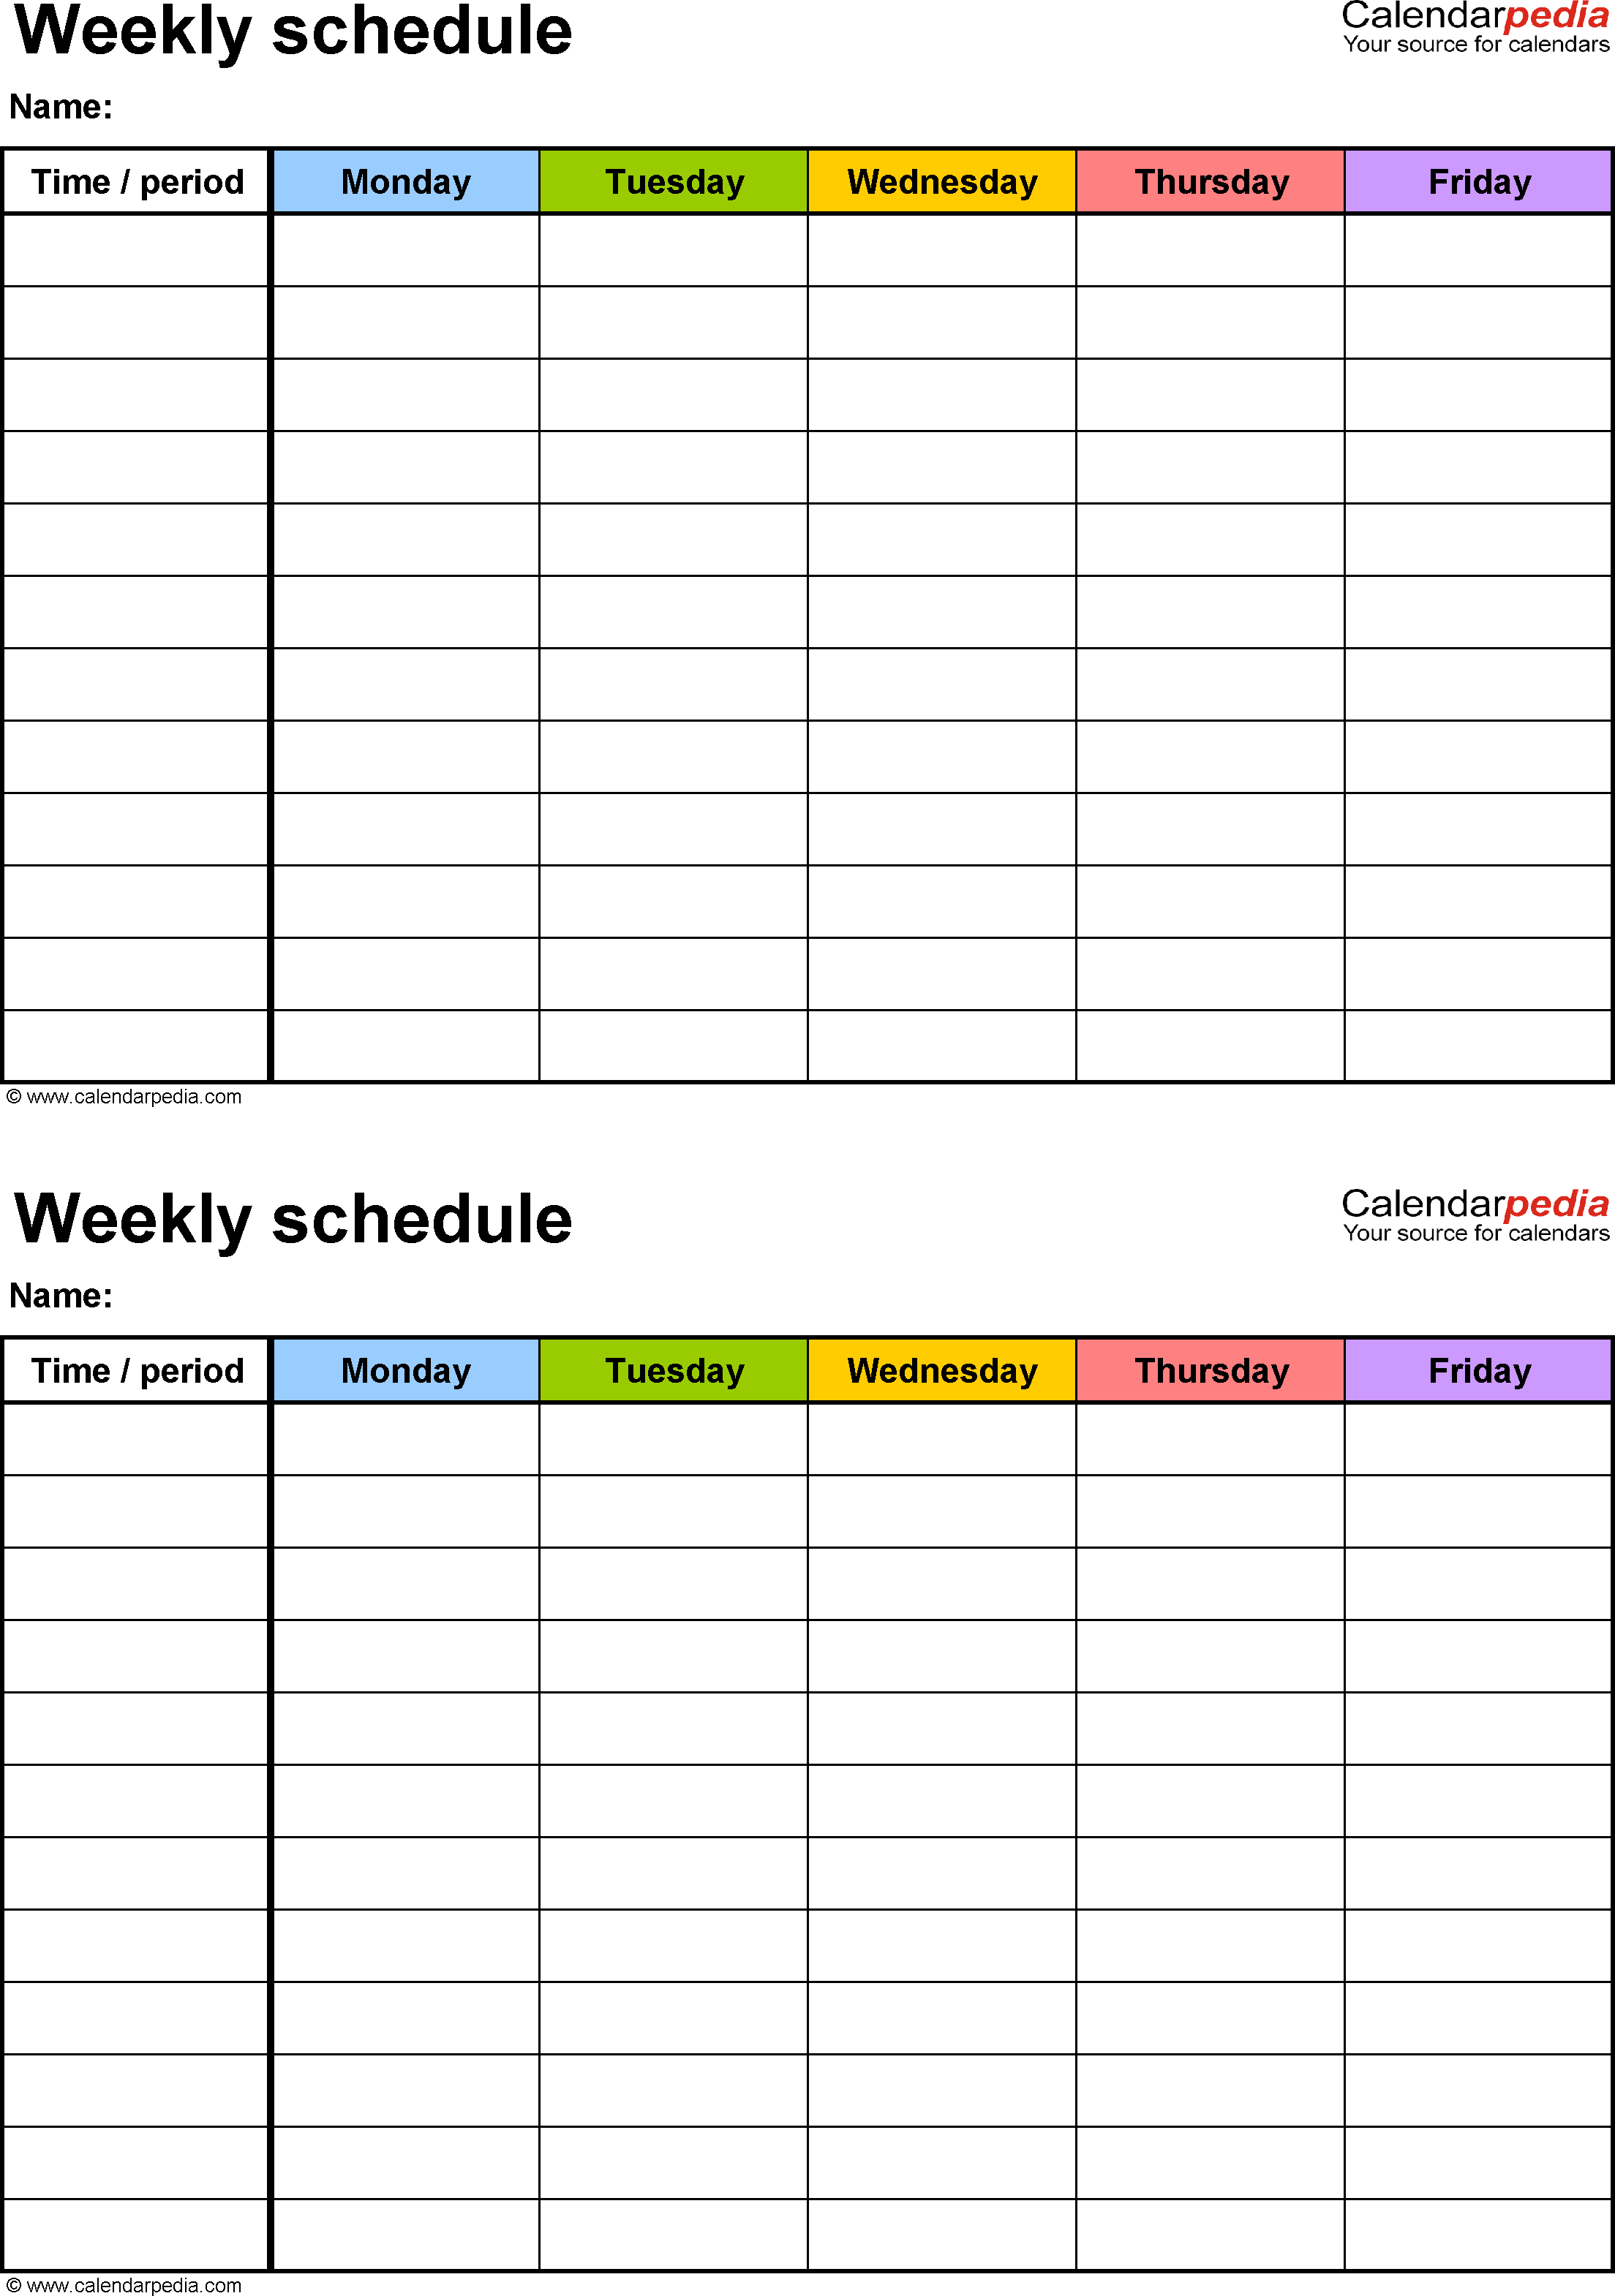 Weekly Schedule Template For Excel Version 3 2 Schedules